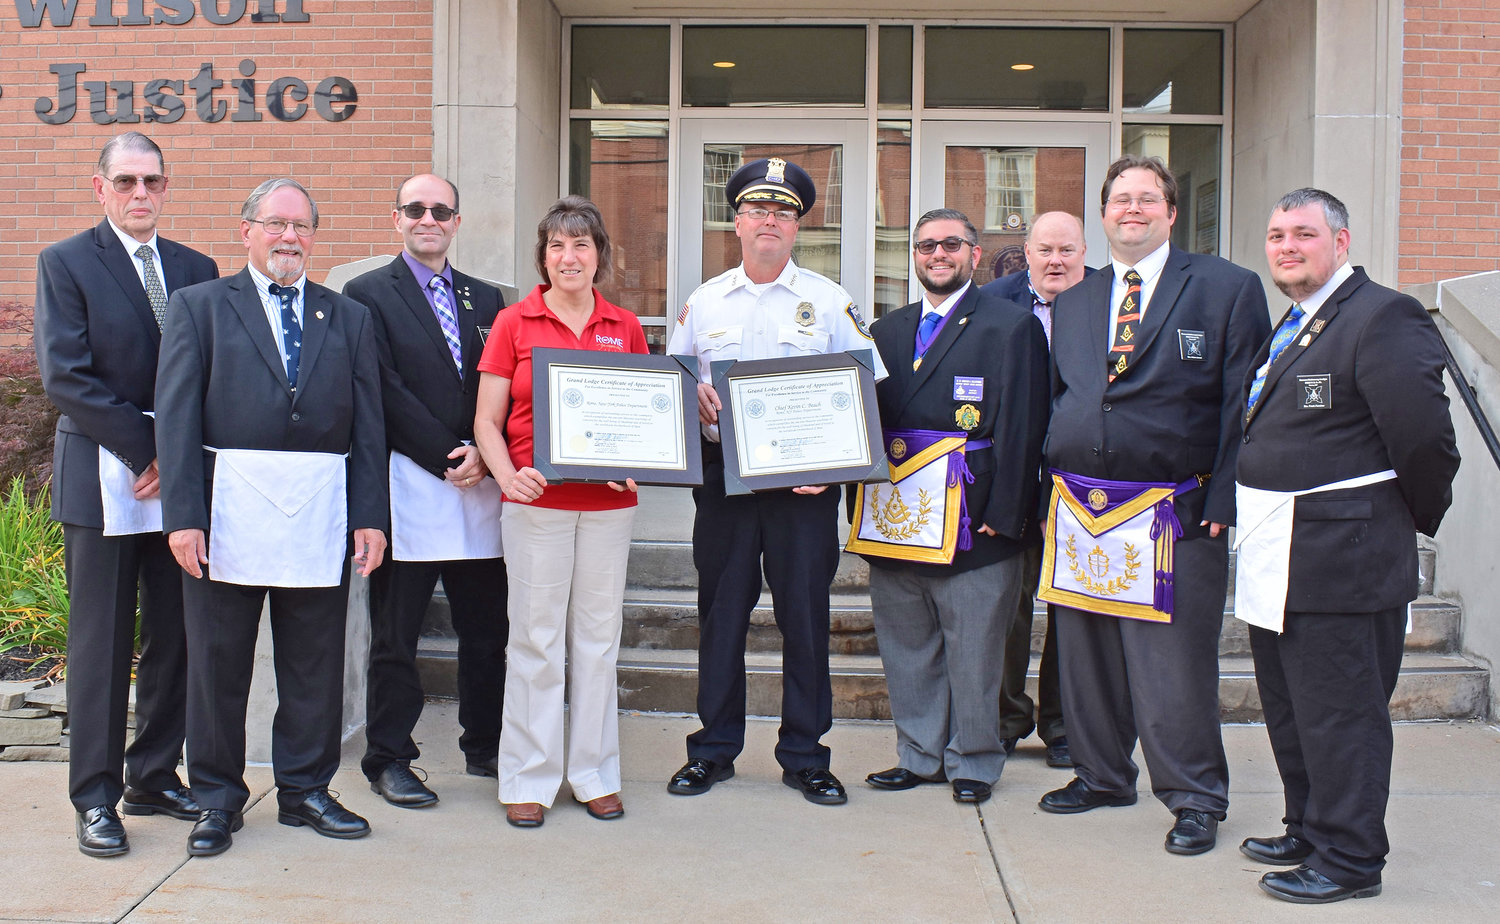 New York State/U.S. - Masons present Rome Police chief, department with awards